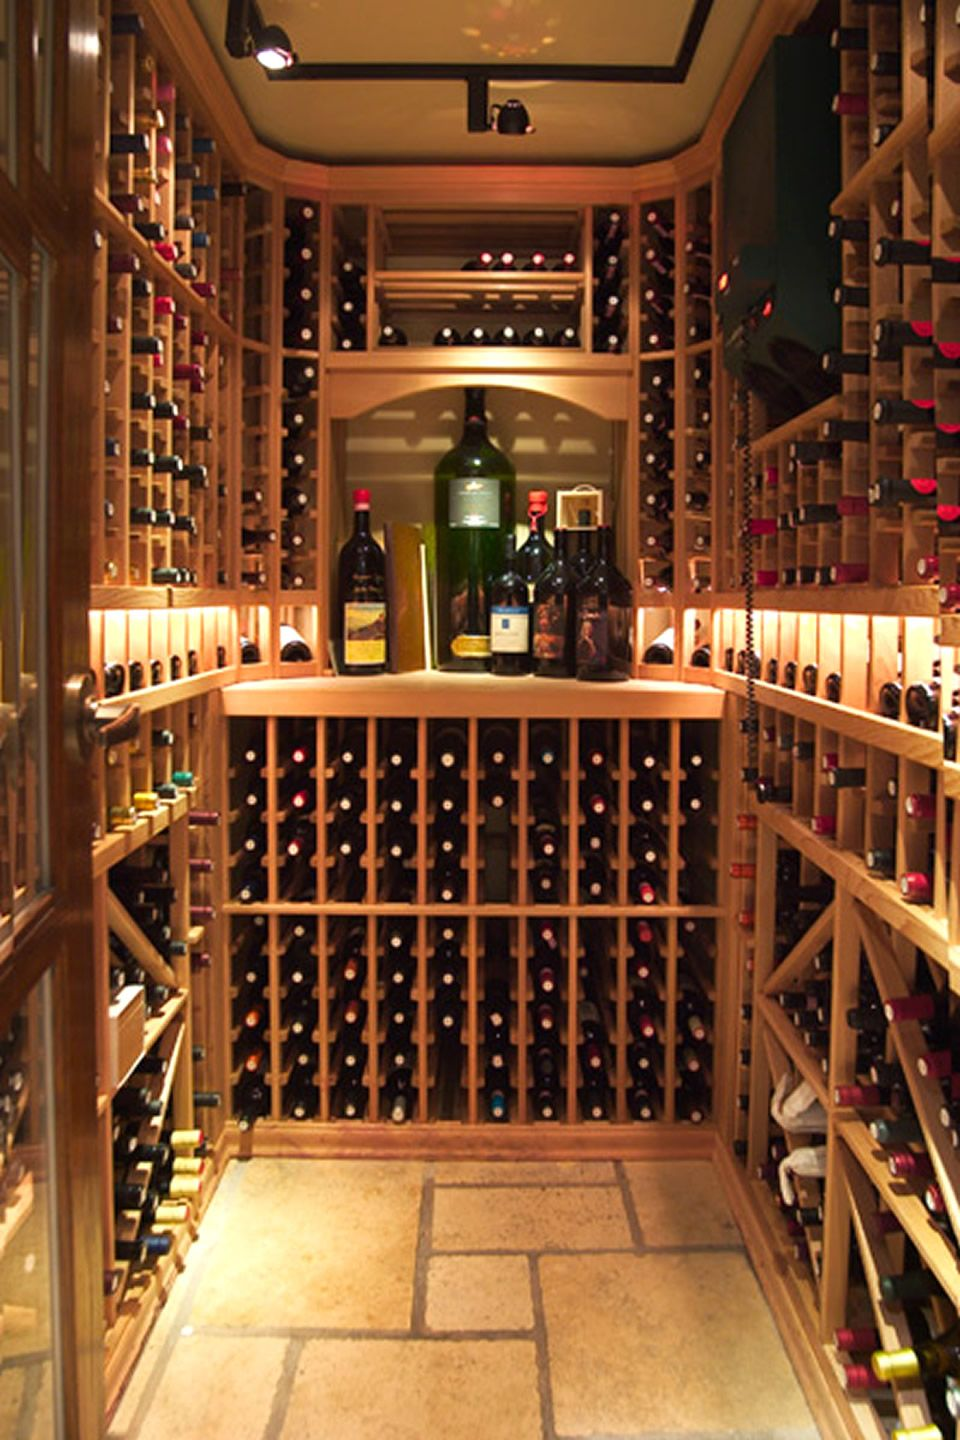 Trattoria Design Google Search Wine Cellarssimple Home Decorationrestaurantimagebardining Roominterior